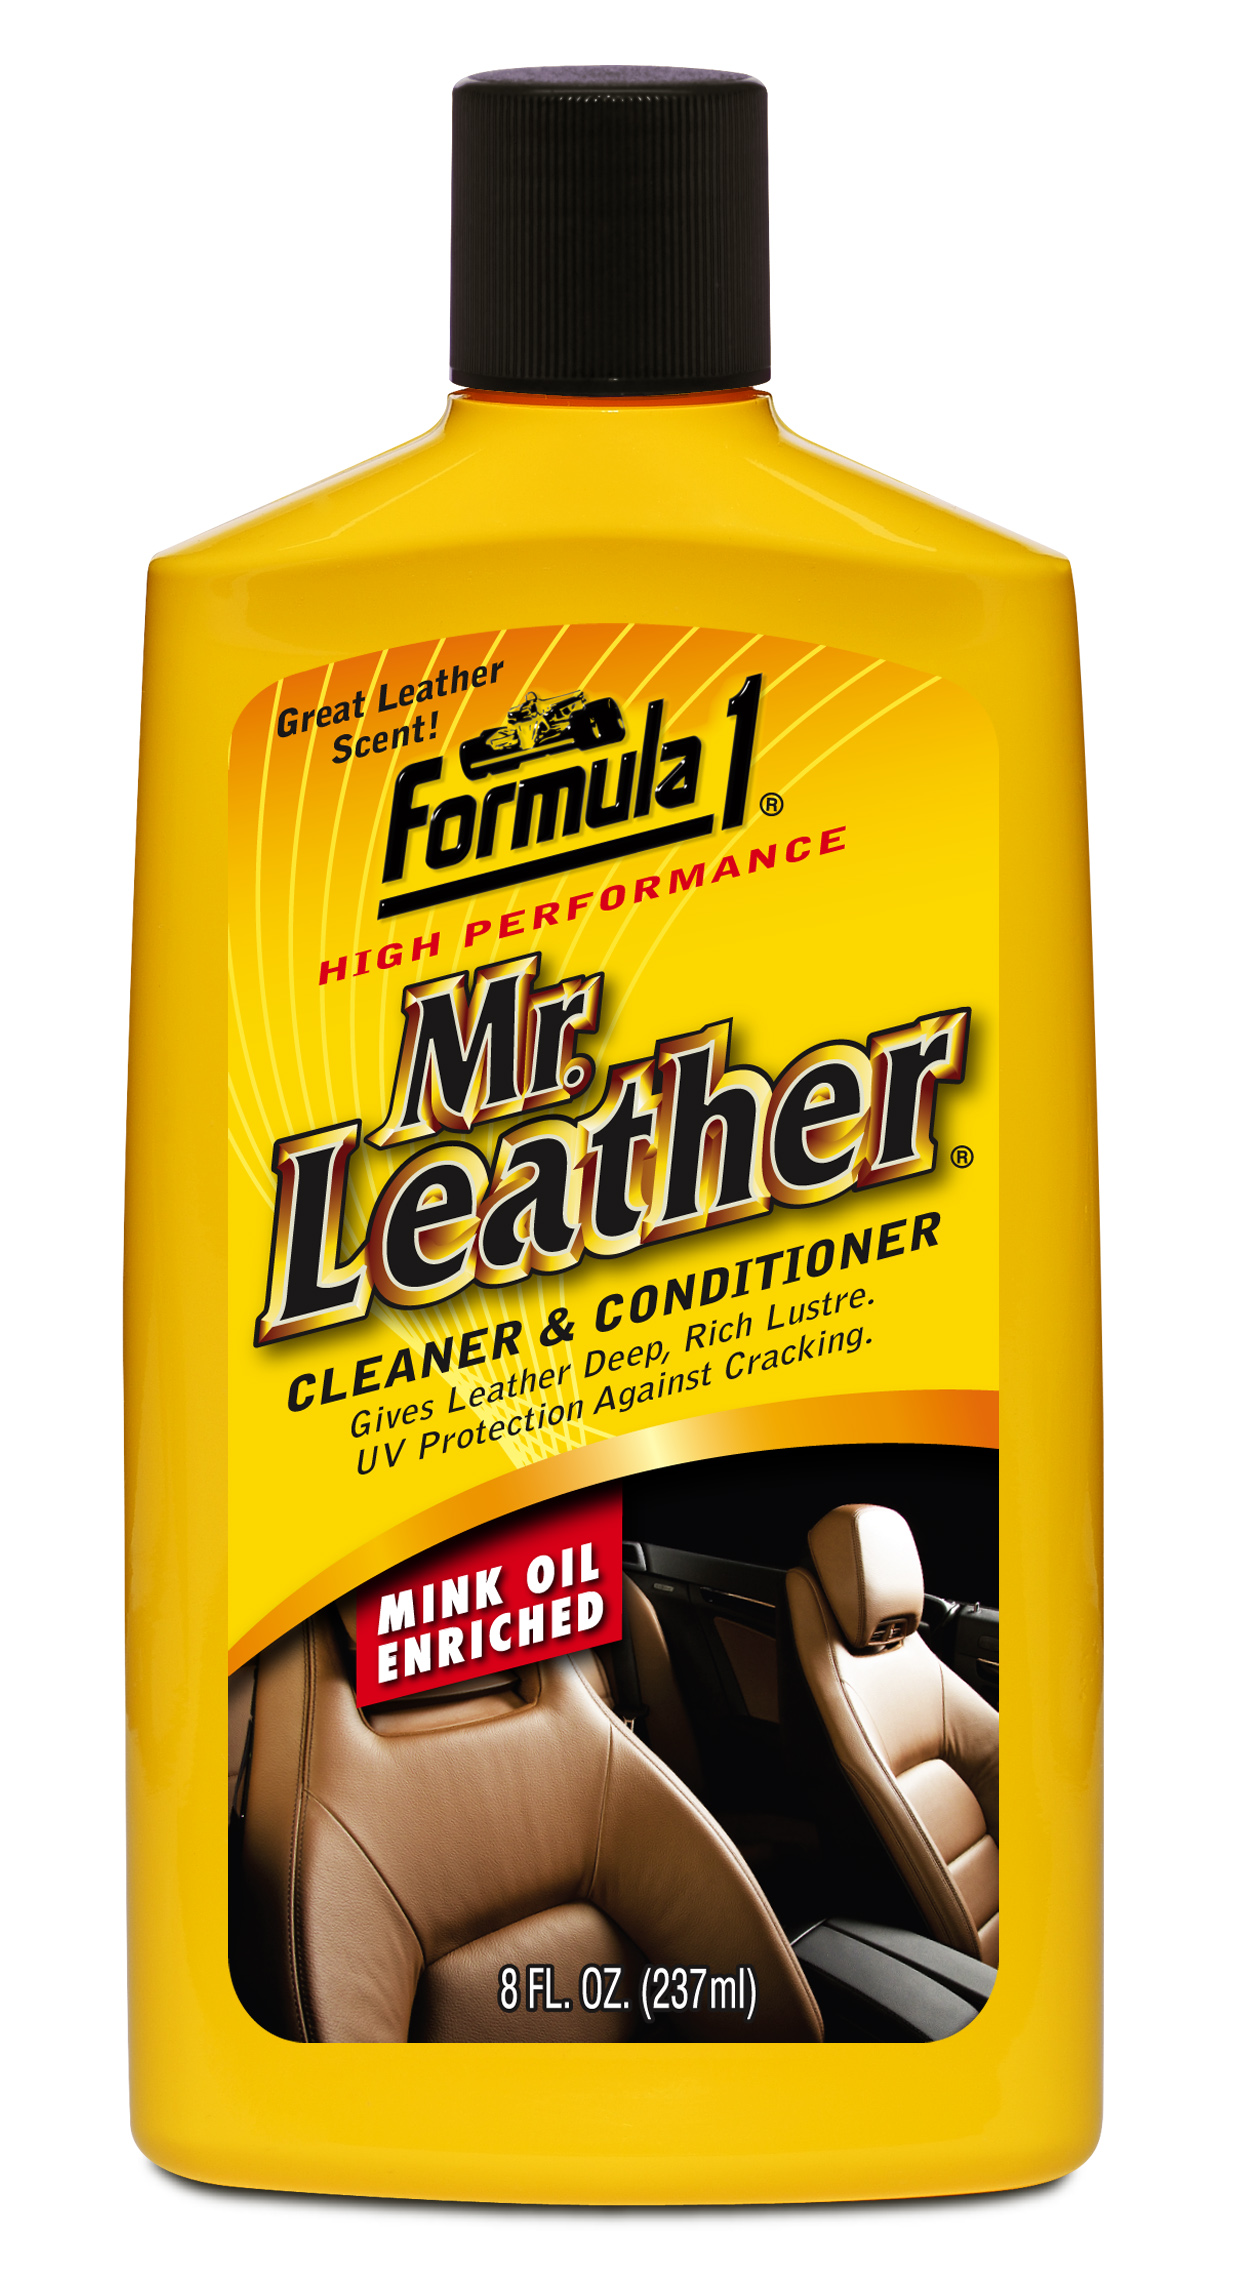 Mr. Leather Liquid Image